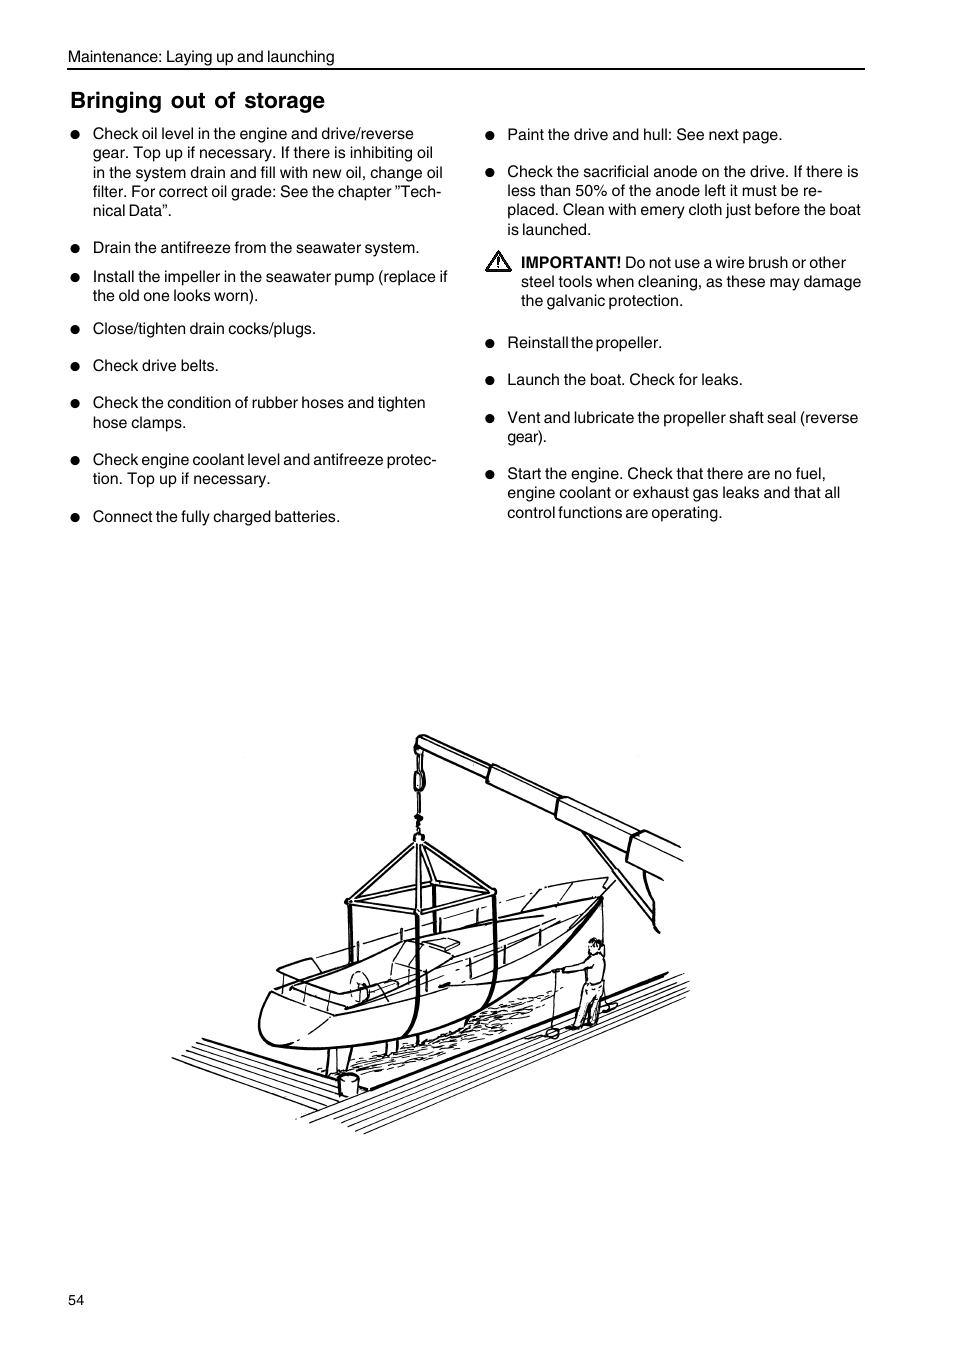 Bringing Out Of Storage Volvo Penta D2 75 User Manual Page 56 Boat Engine Diagram